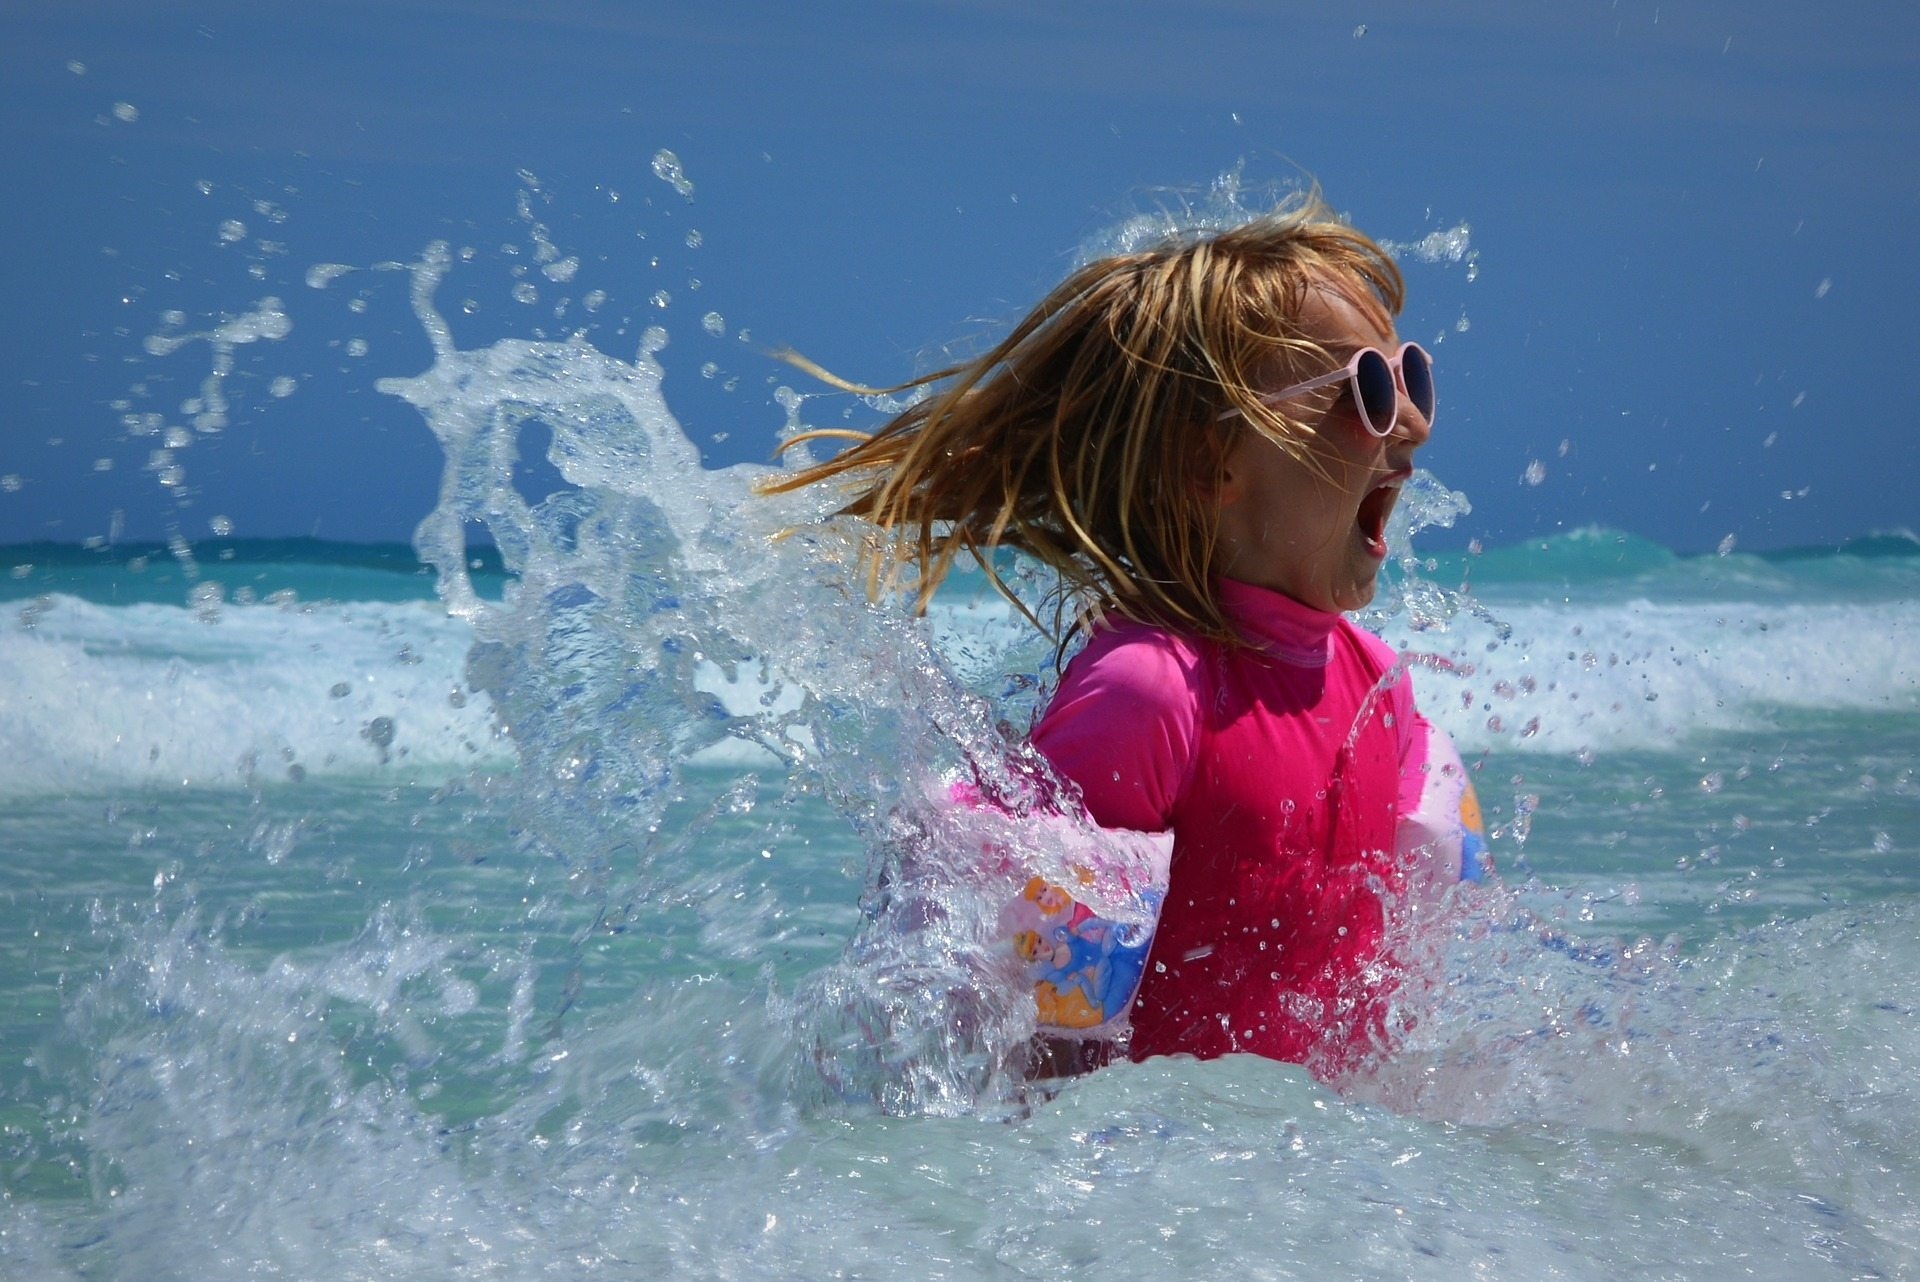 girl playing in the water with portective sunglasses and shirt